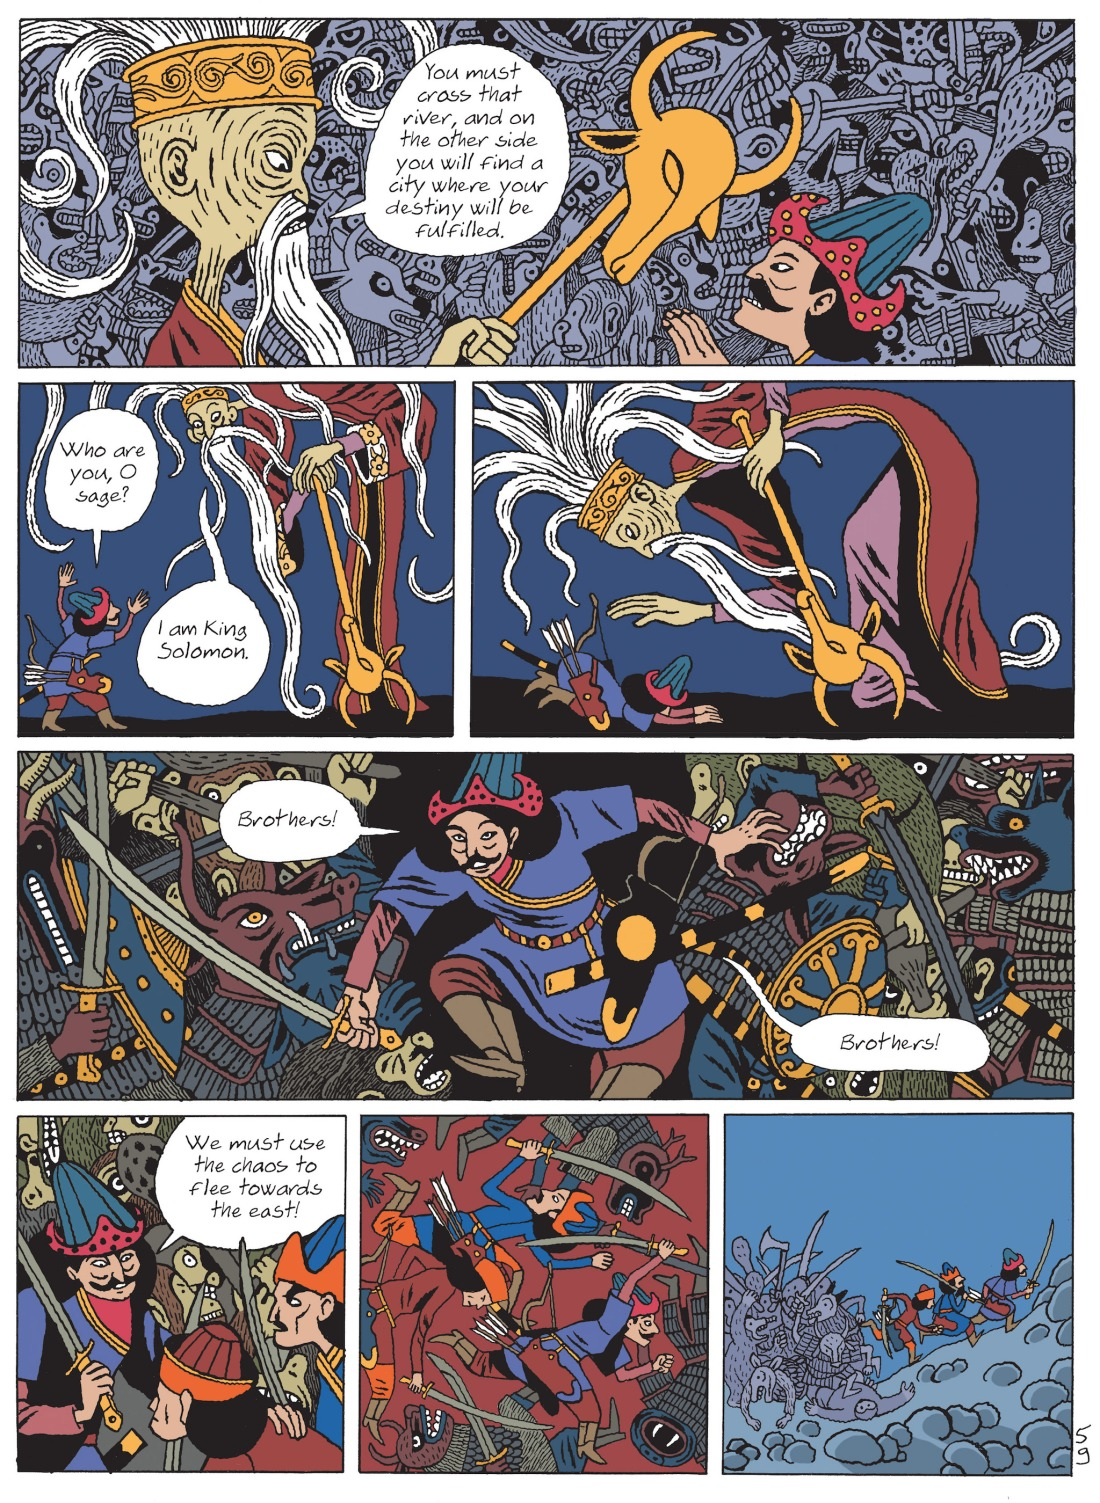 Hasib & the Queen of Serpents - A Tale of a Thousand and One Nights - Salomon